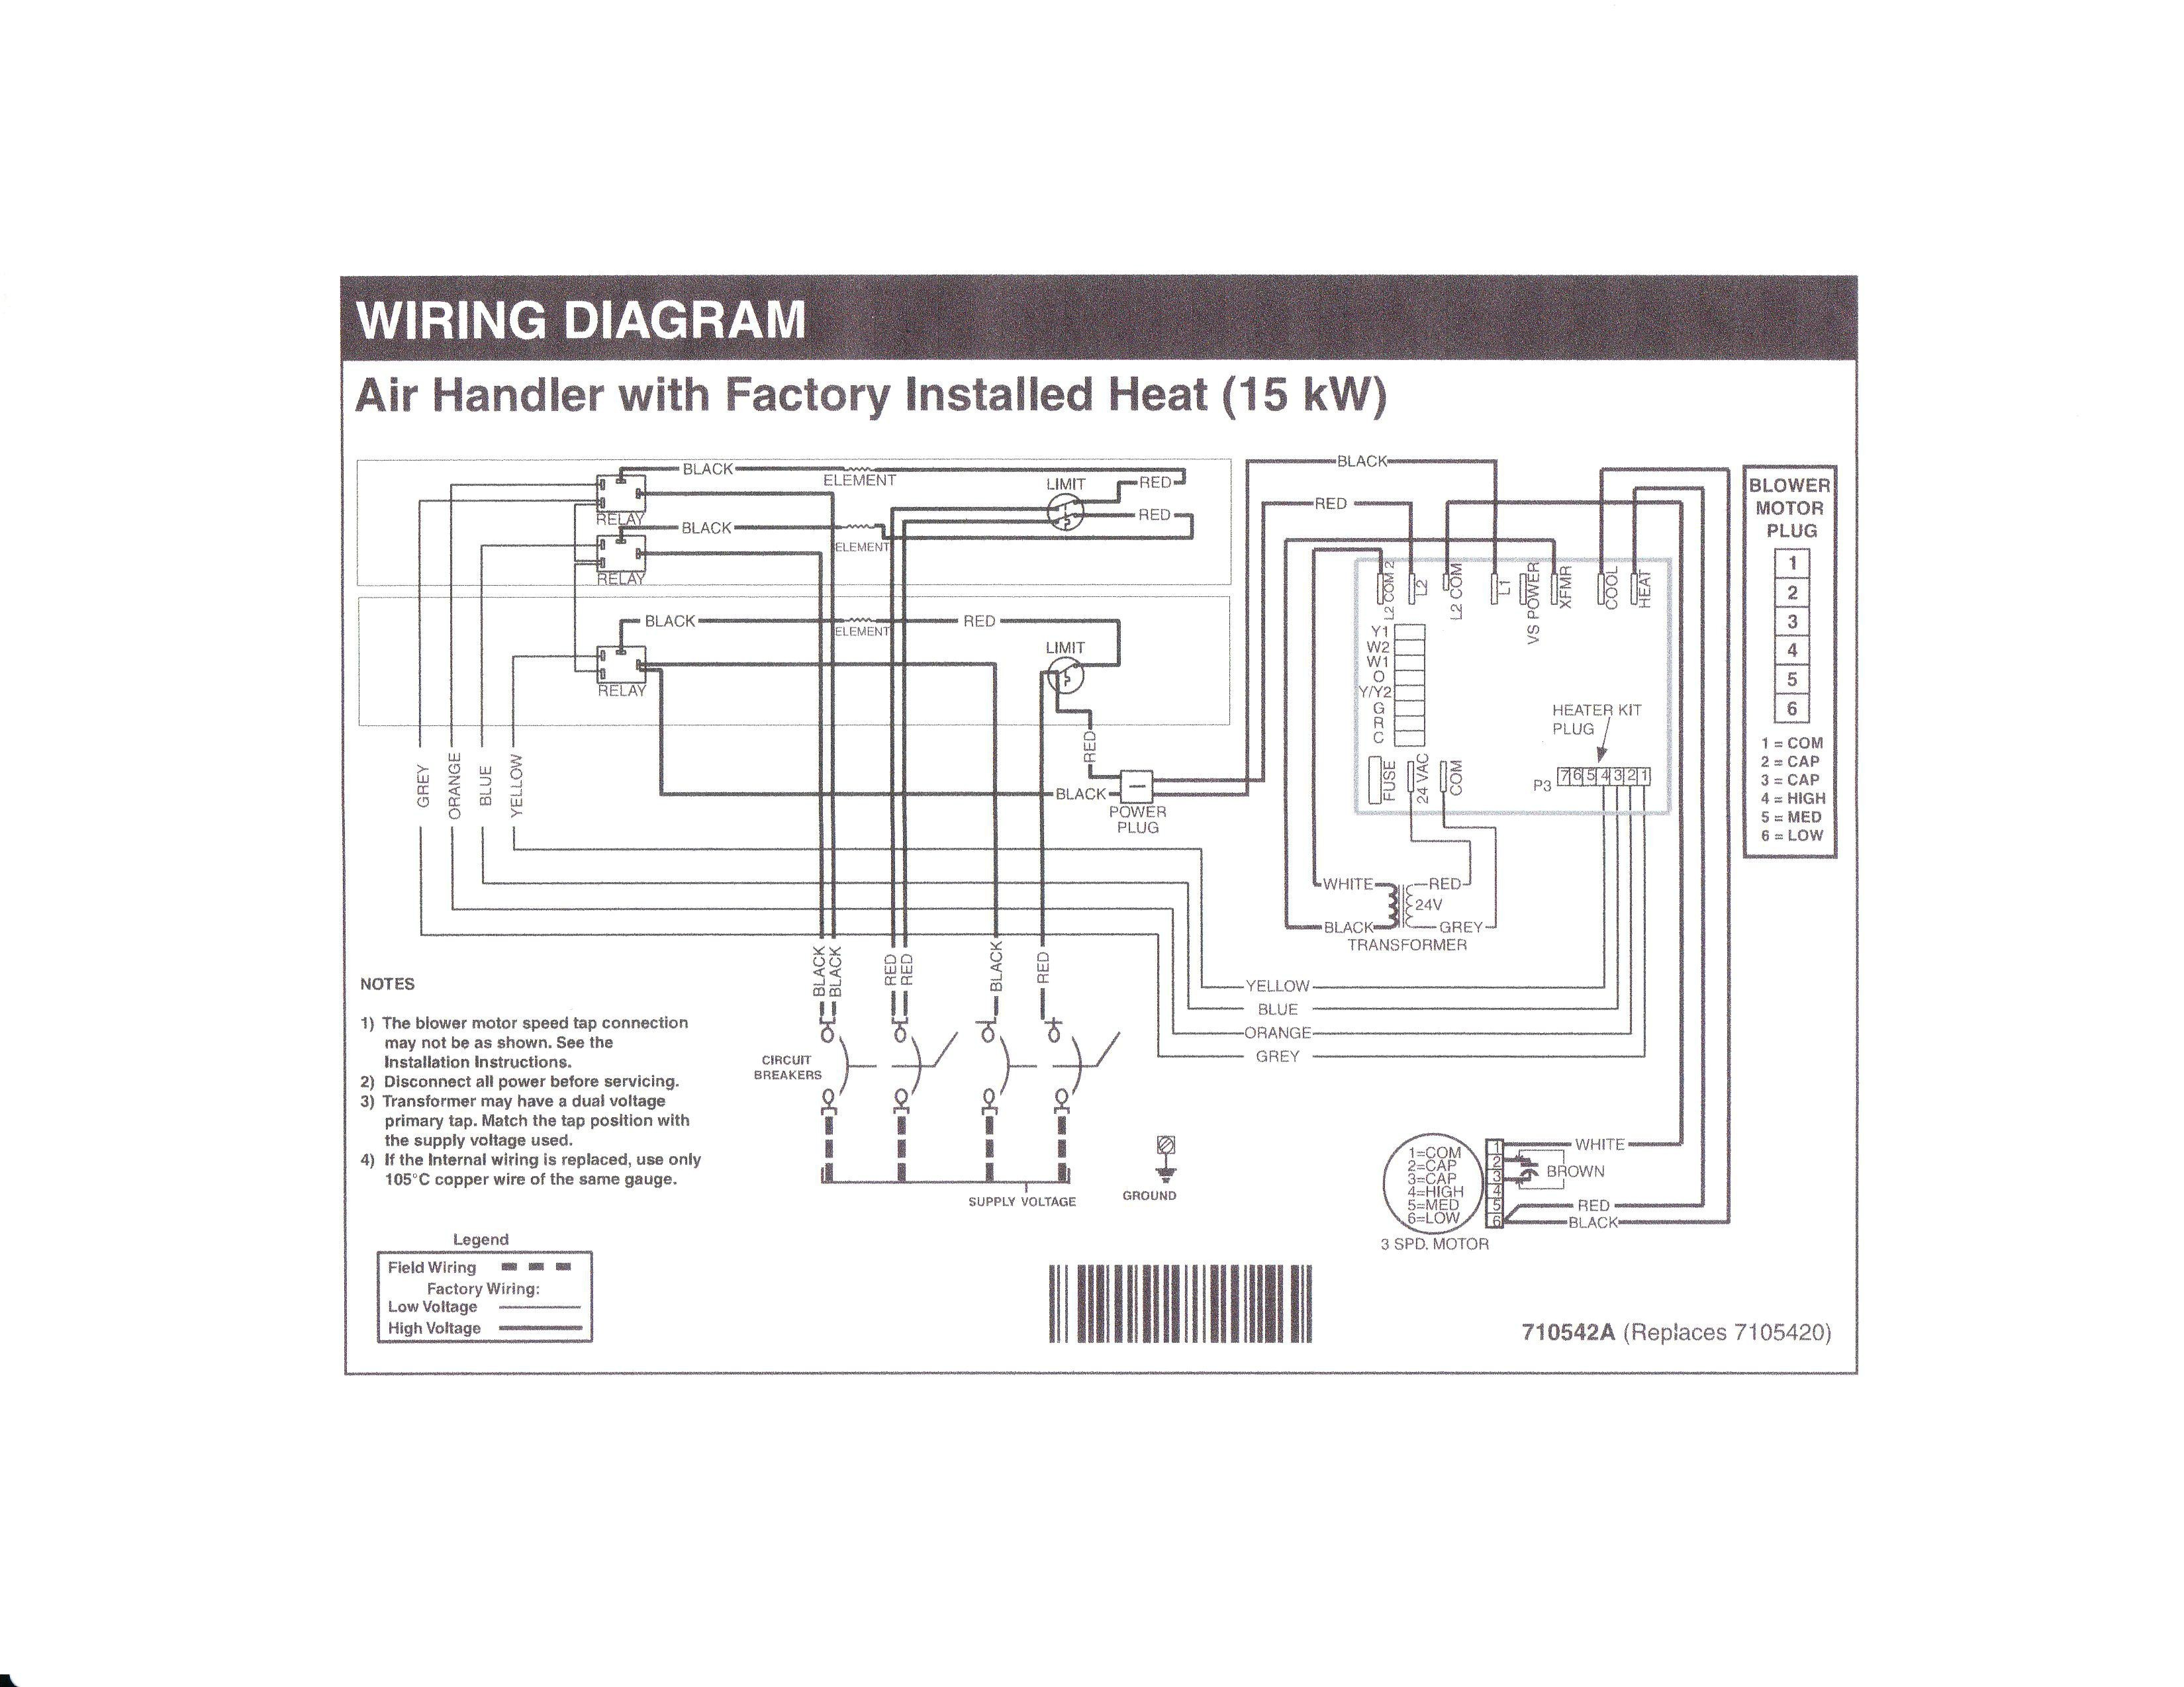 3 Prong Outlet Wiring Diagram Lovely Coleman Presidential Electric Furnace Wiring Diagram for Gas the